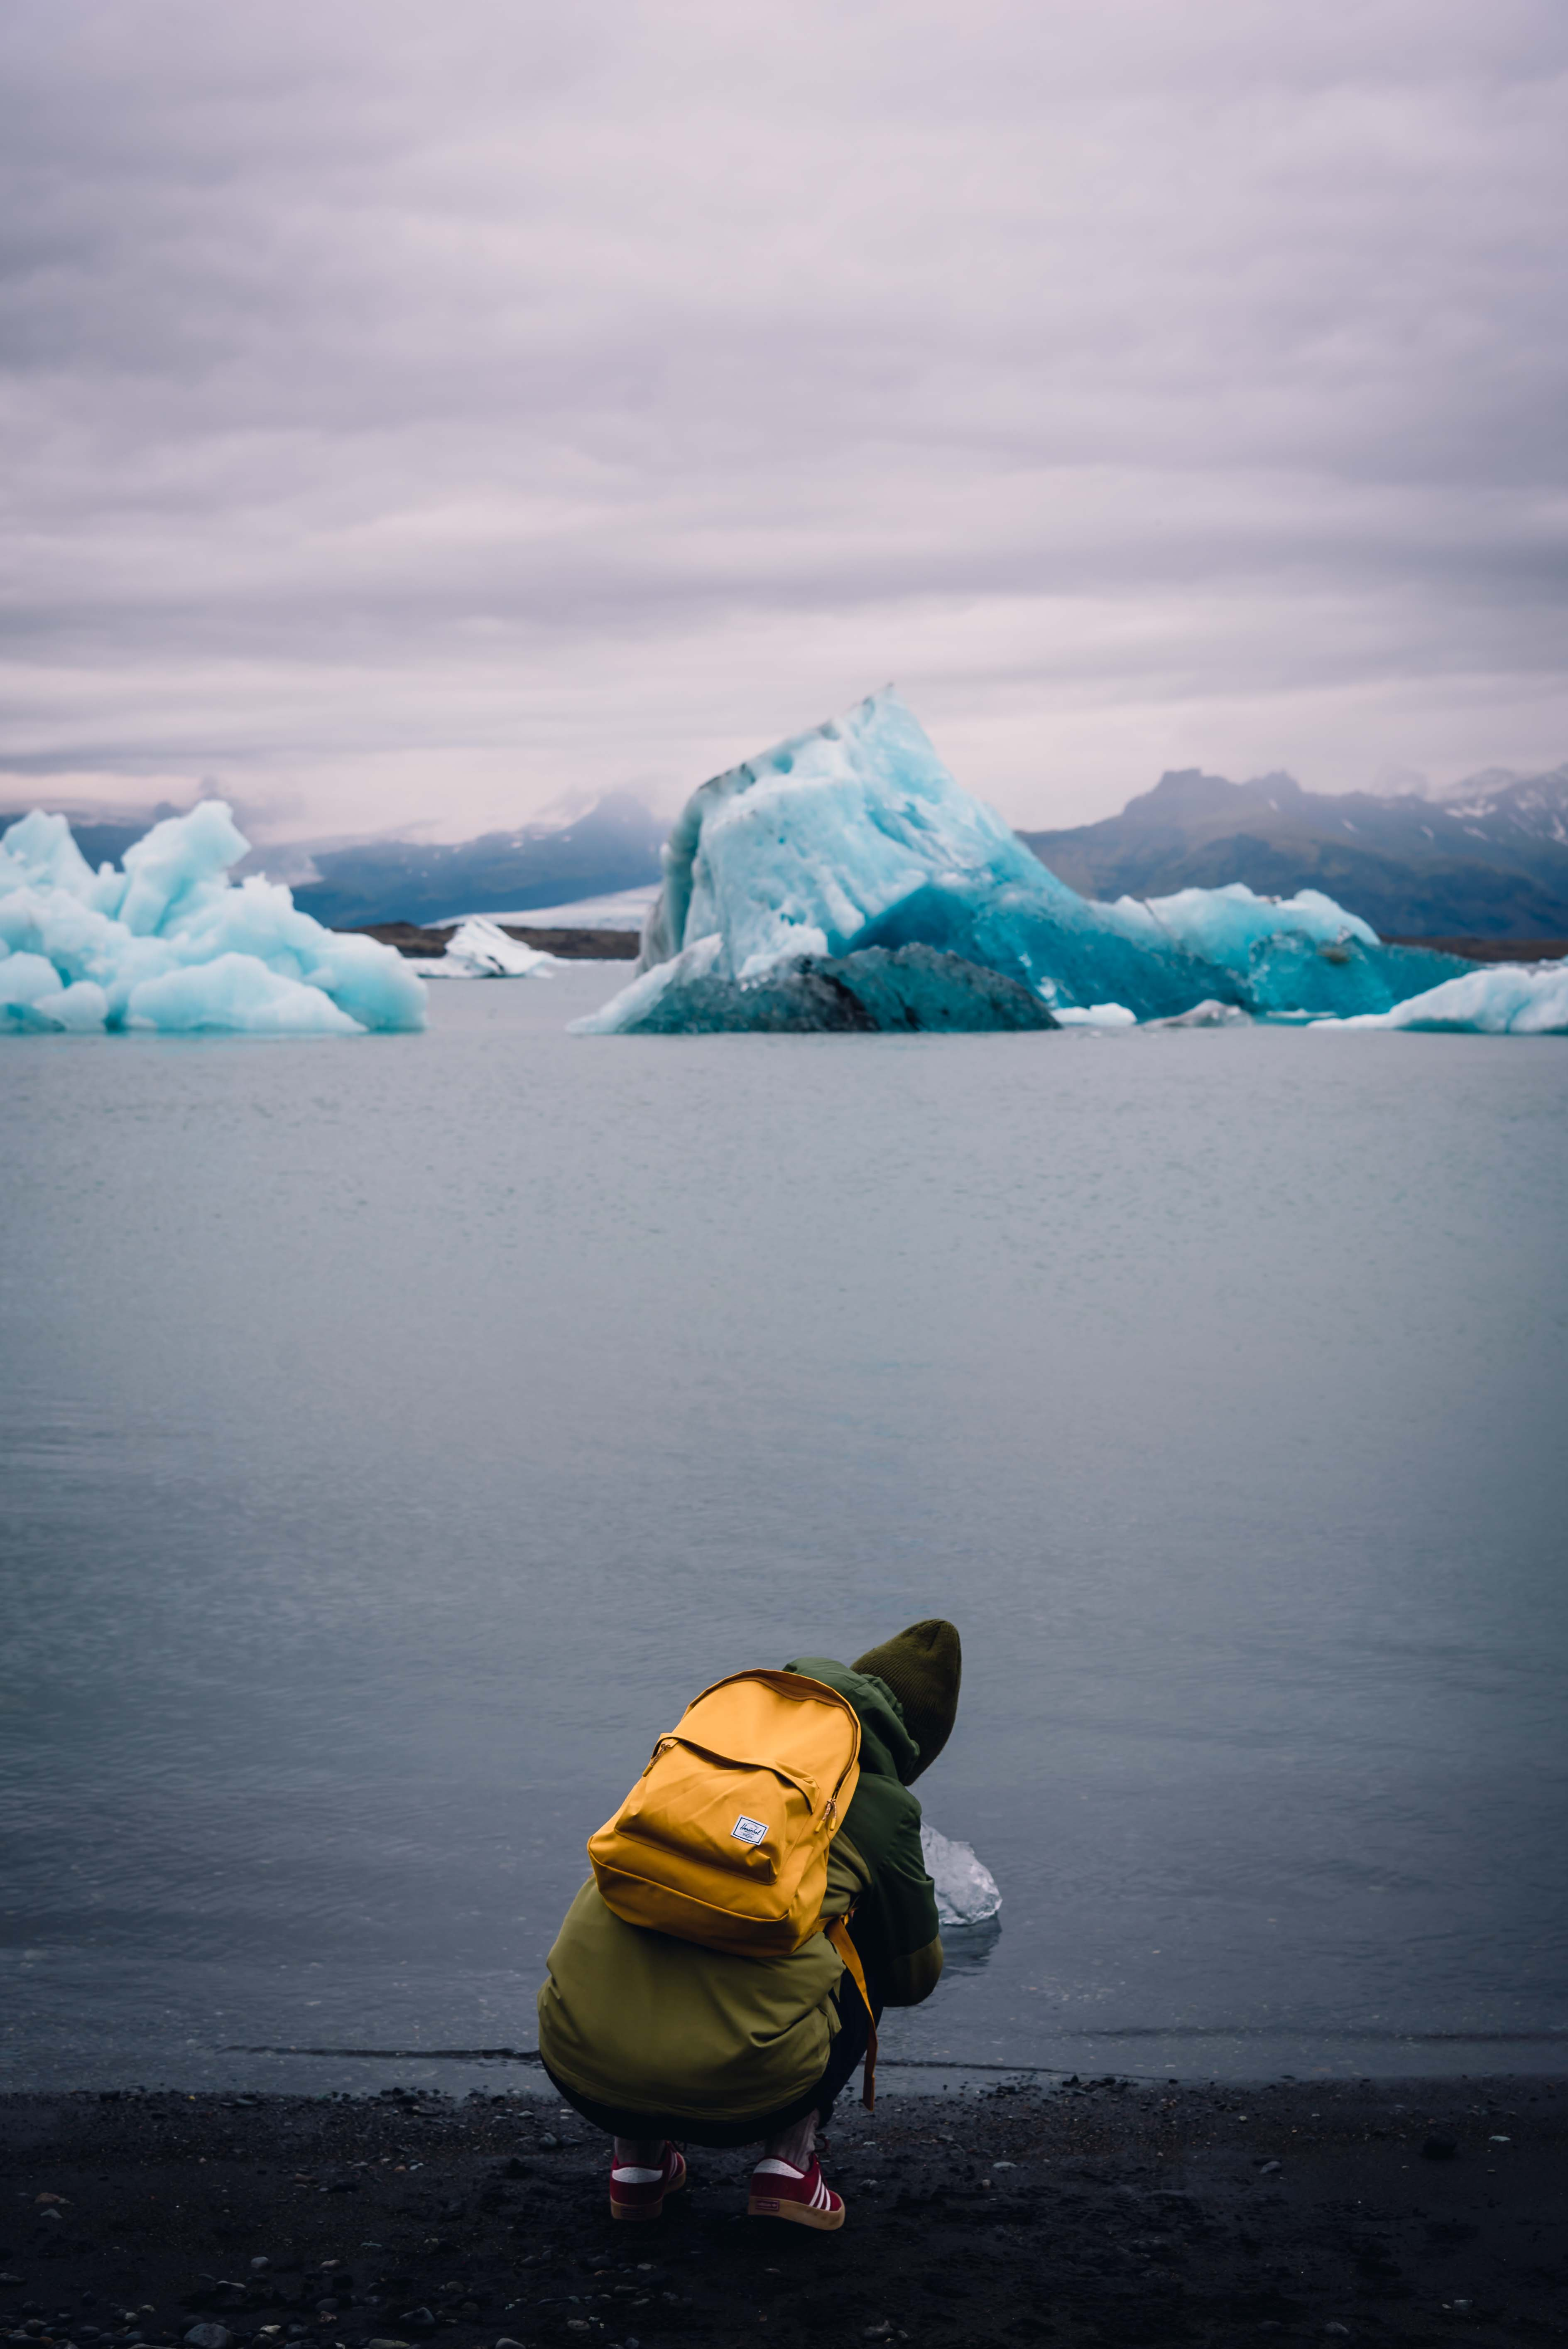 neilson travel photography bay area photographer iceland glaciers yellow backpack